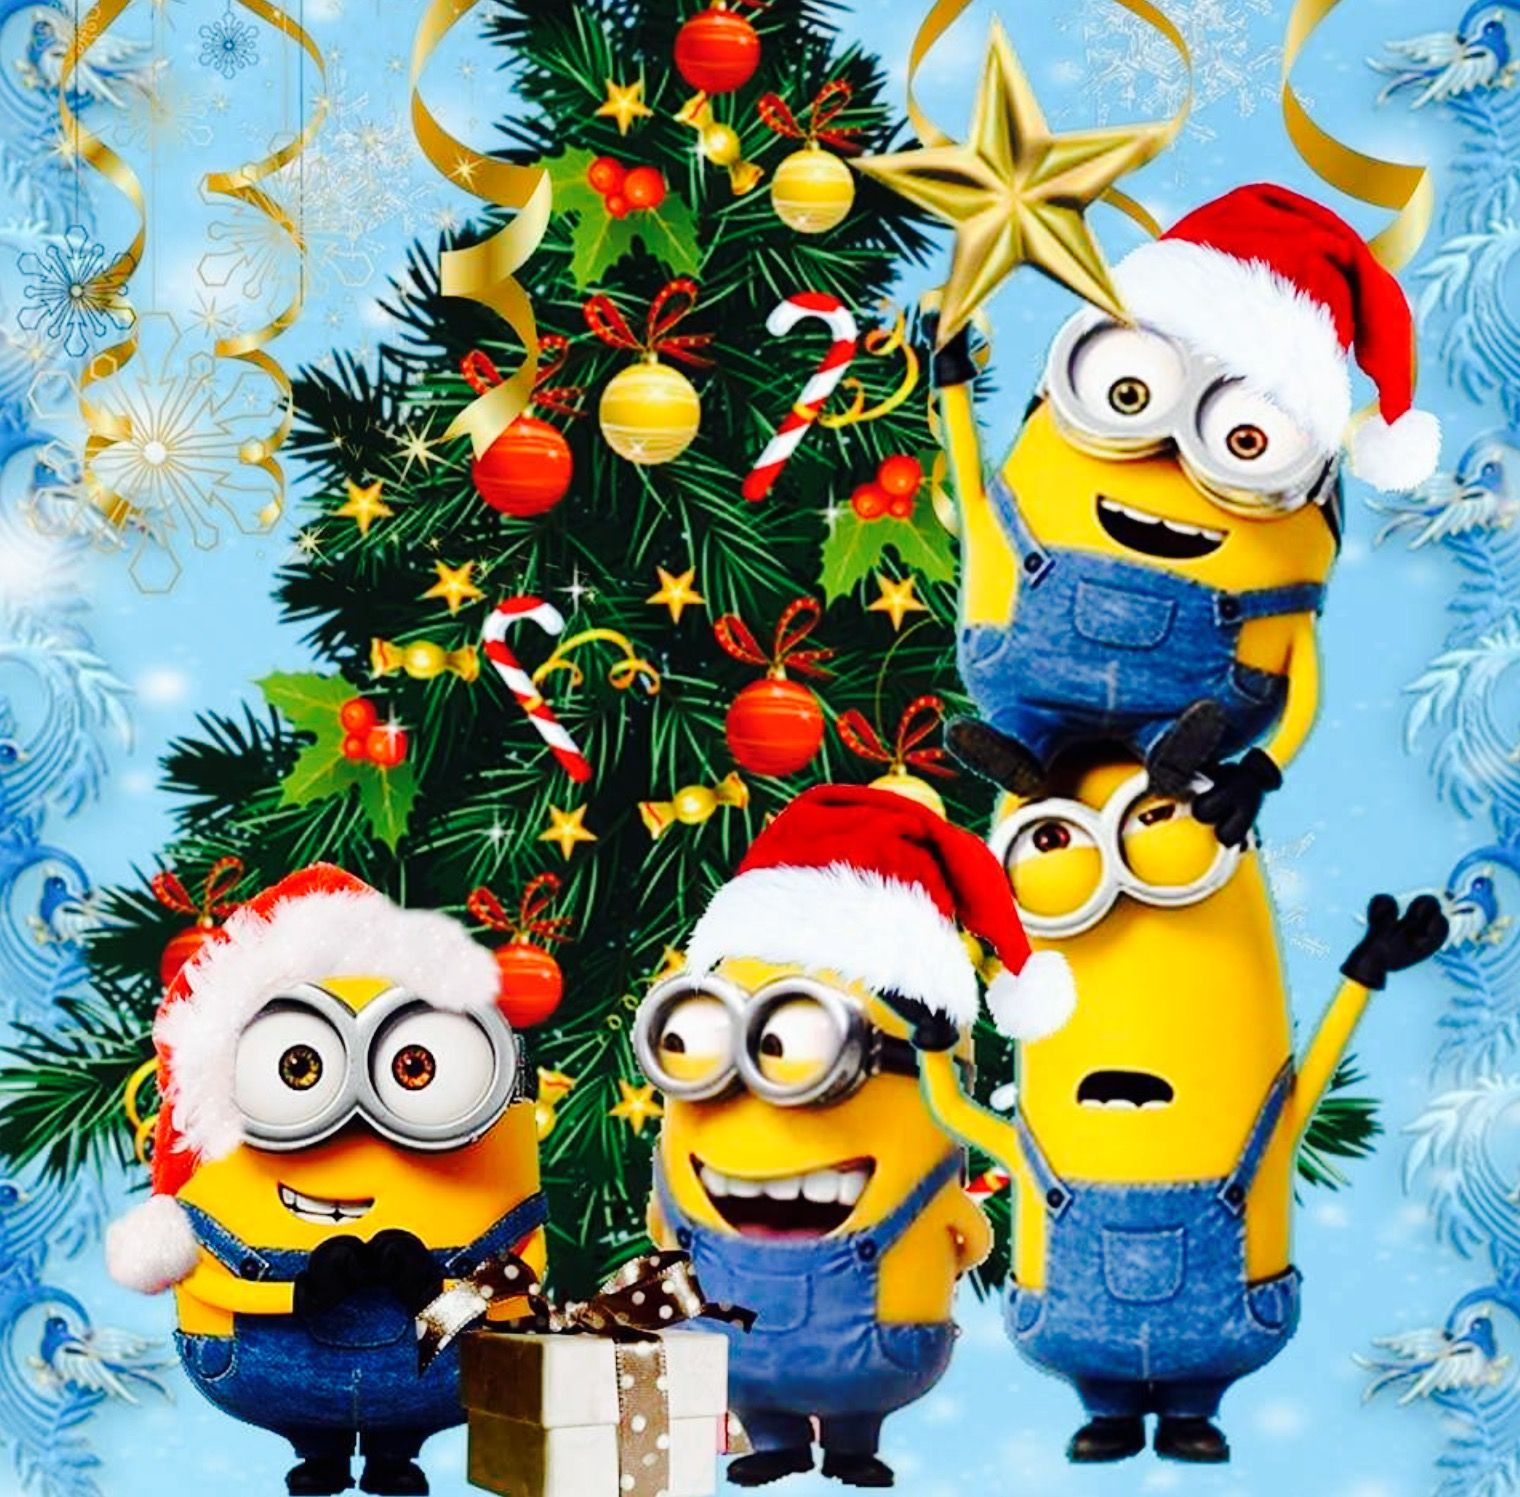 Pin By Gyurity Renata On Beautiful Happy Special Holiday Photoz D Minions Wallpaper Merry Christmas Minions Minion Christmas